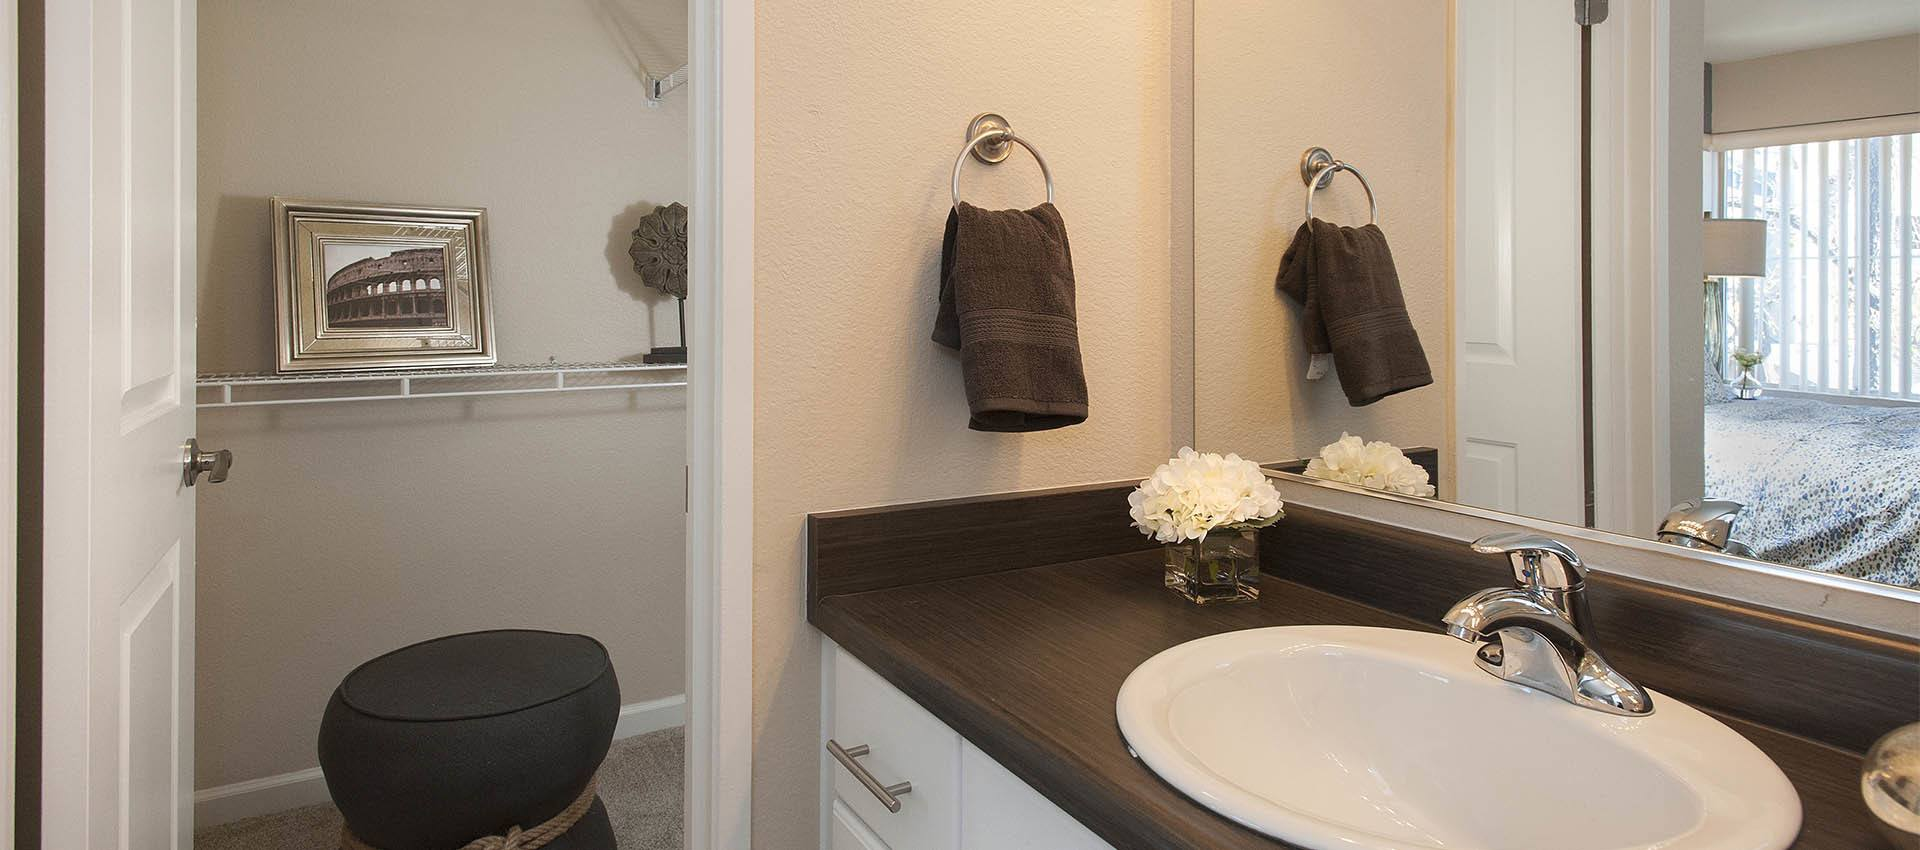 Modern Bathrooms at Mill Springs Park Apartment Homes in Livermore